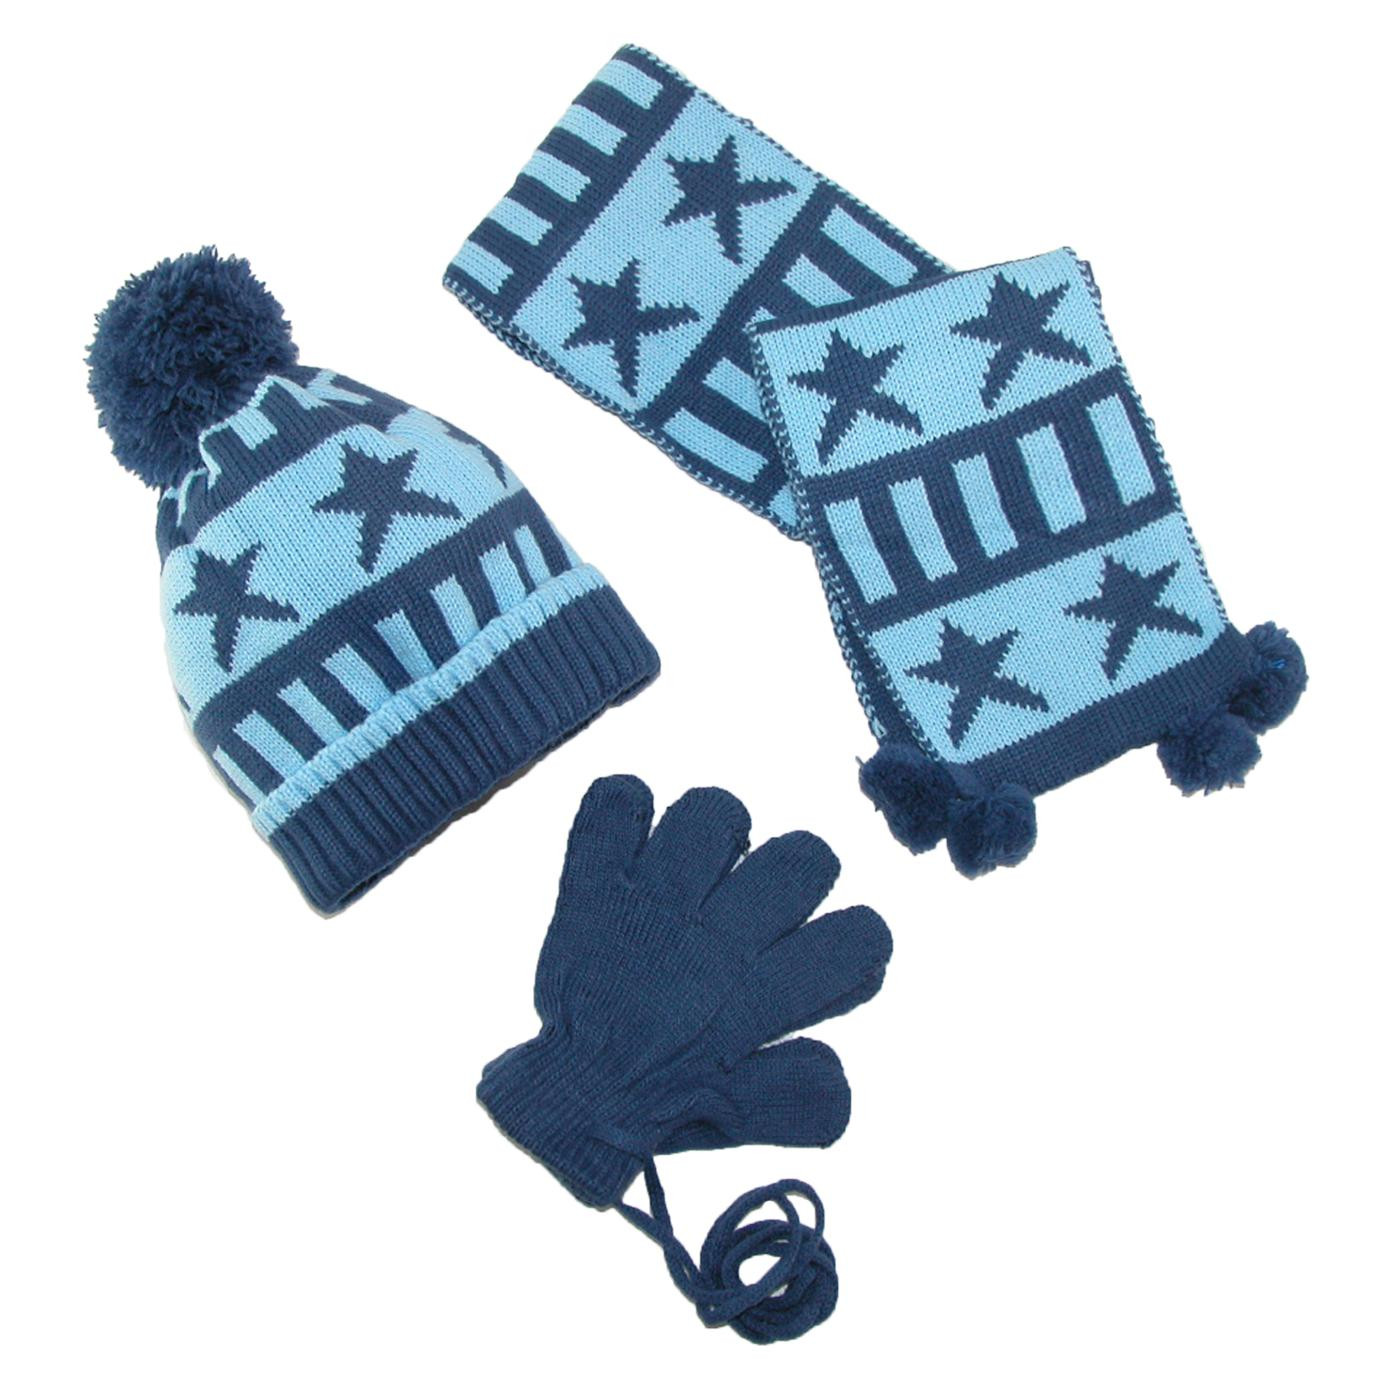 Scarf And Winter Hats Clipart Clipart Suggest Save